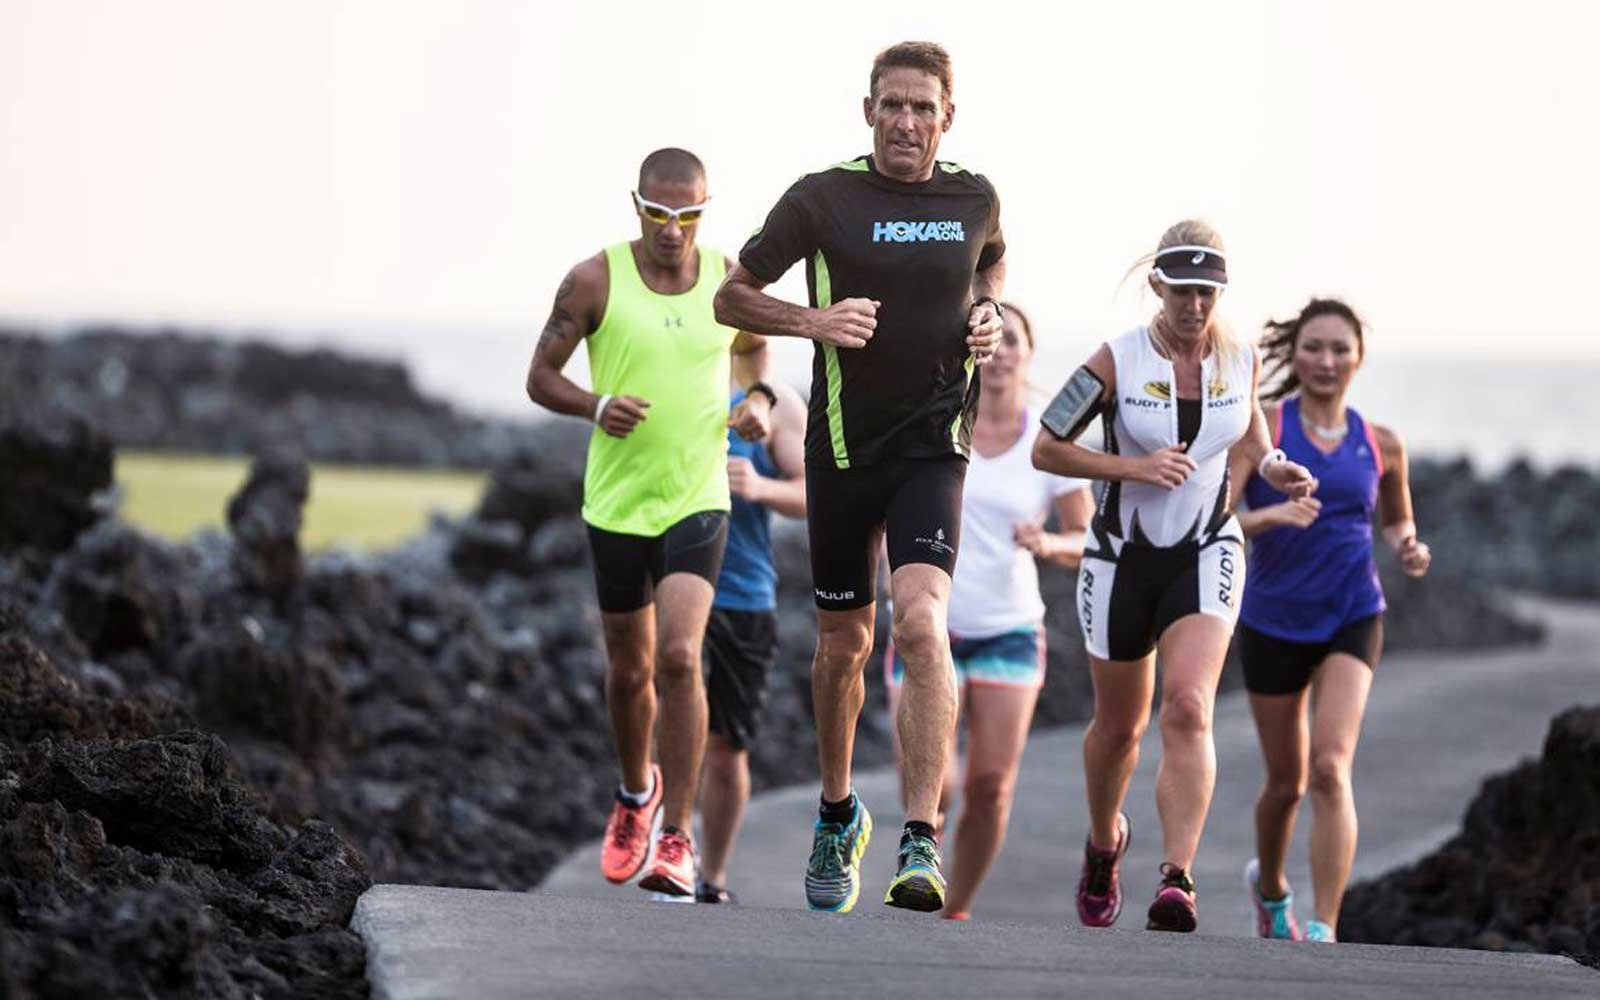 Four Seasons Resort Hualalai Triathlon Camp Wellness Vacations